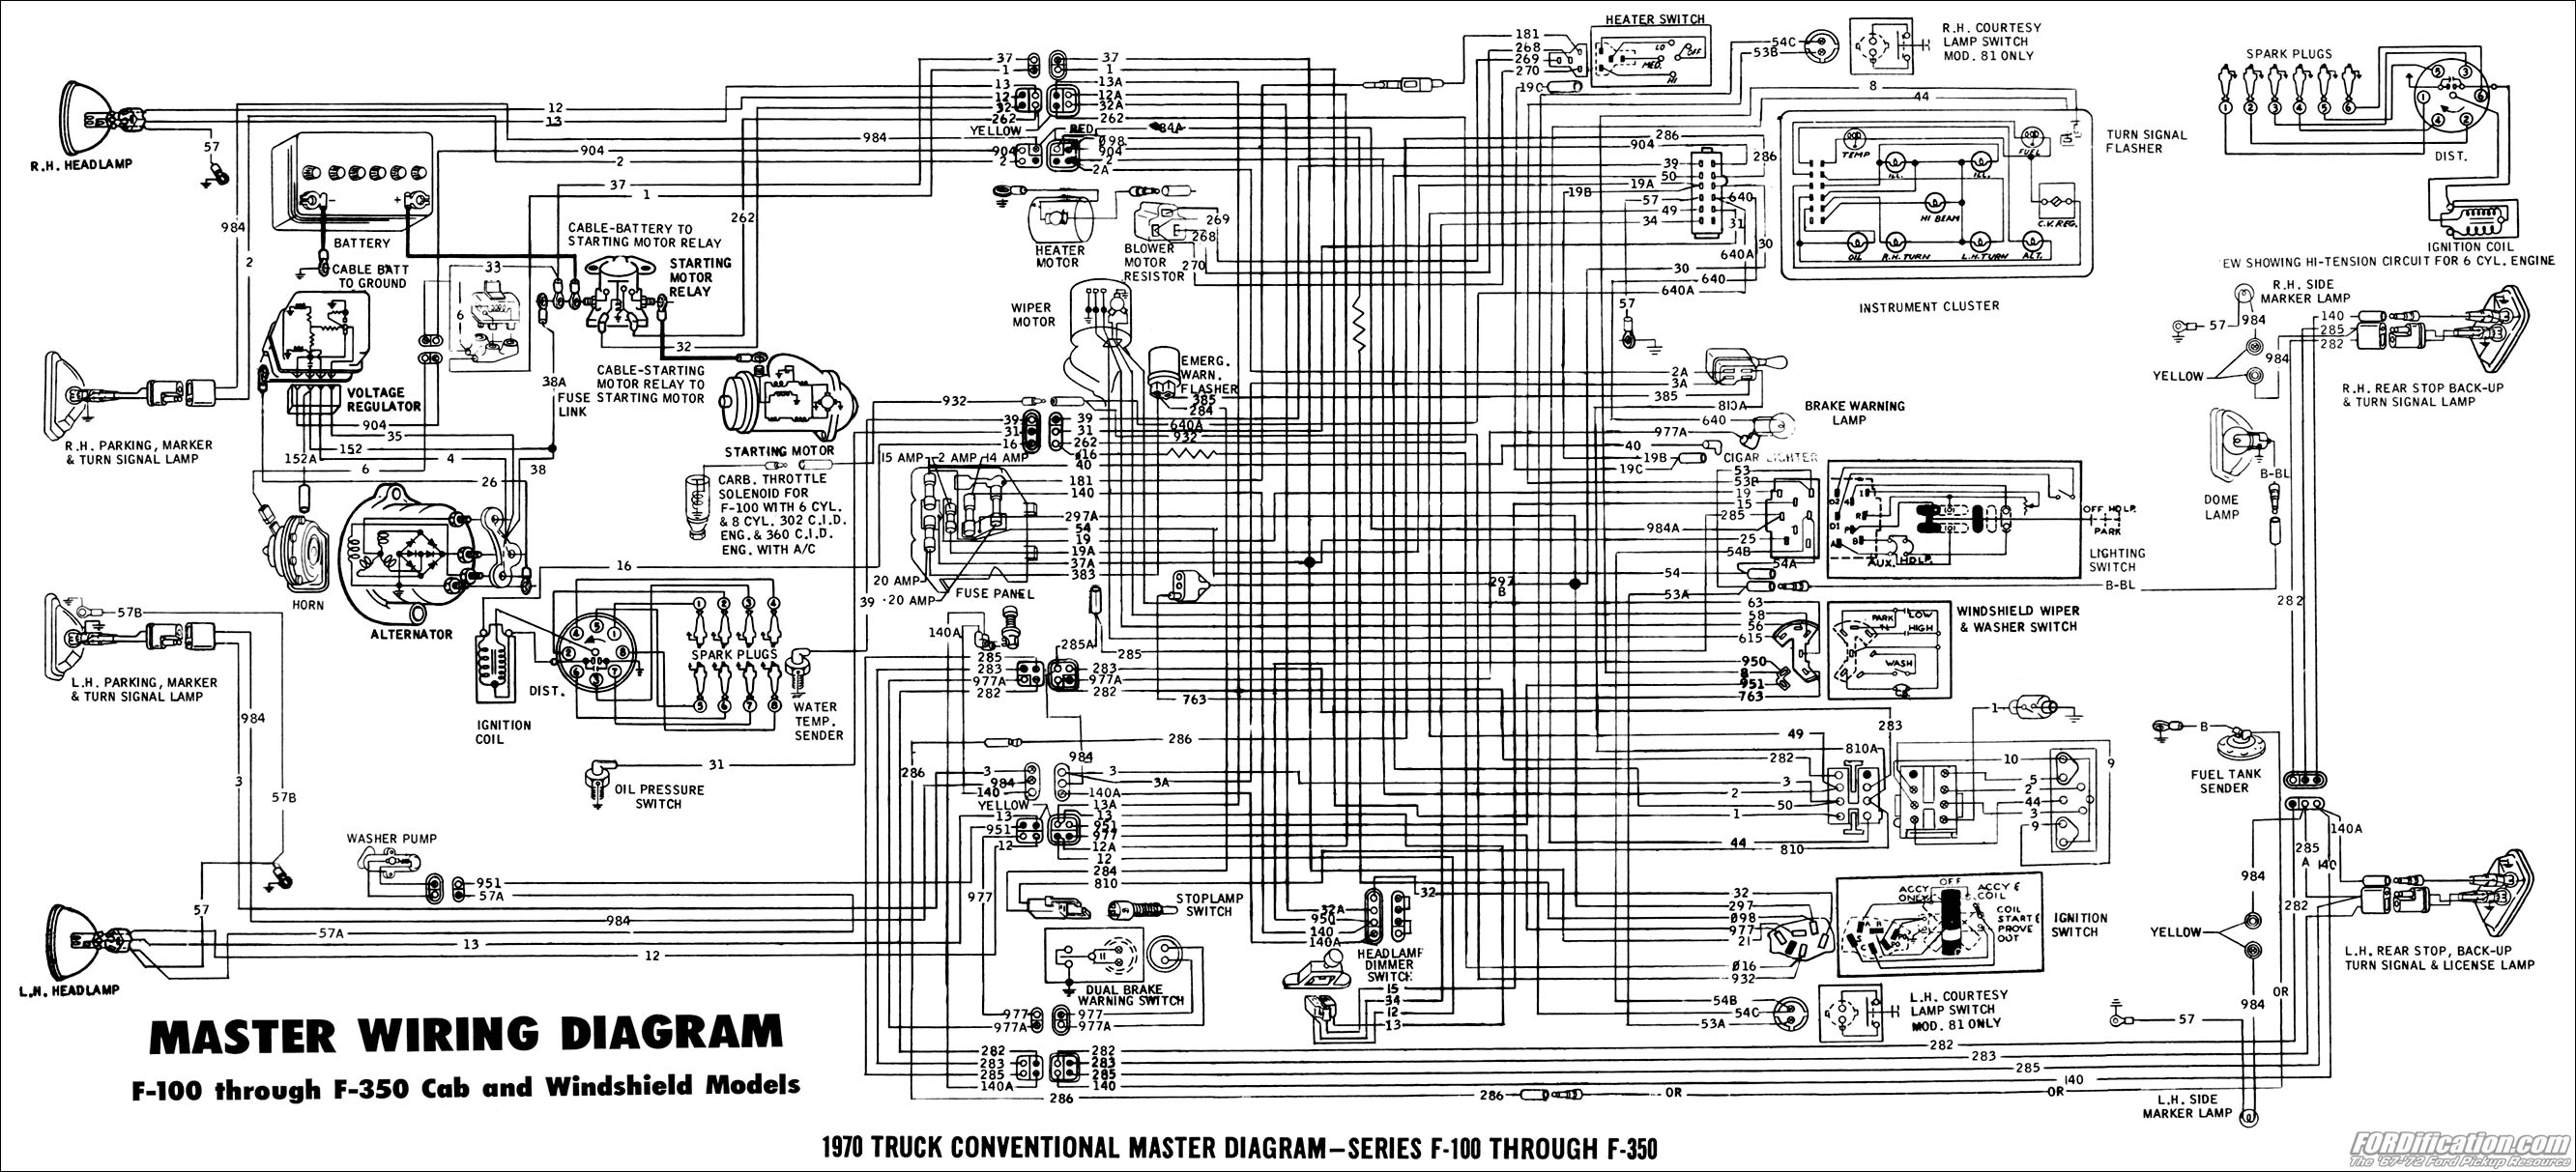 Toyota Headlight Wiring Diagram Color Codes 1970 Body Builder S Layout Book Fordification Com